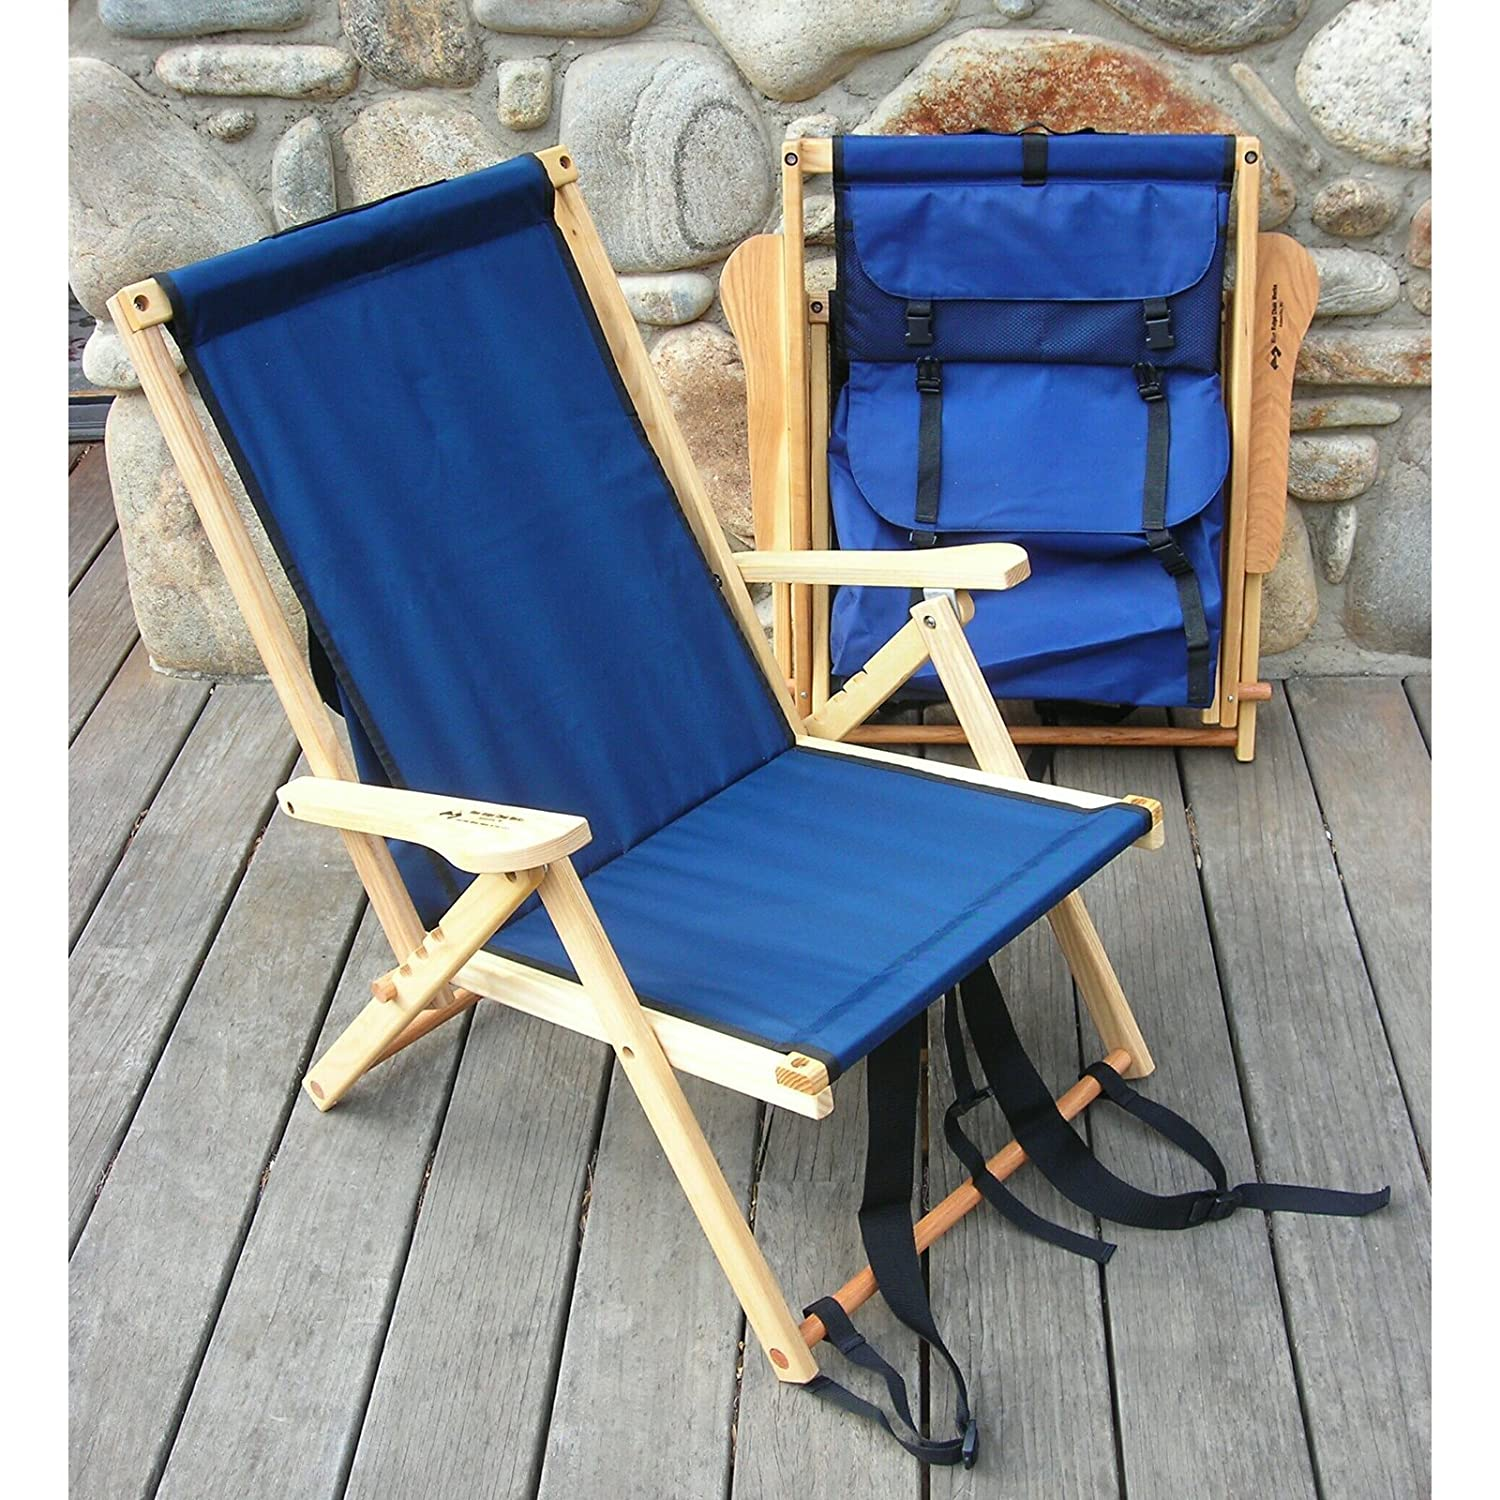 bar storage backpack with chairs towel outdoors beach cooler and weave dp com sports pouch chair amazon bahama blue tommy